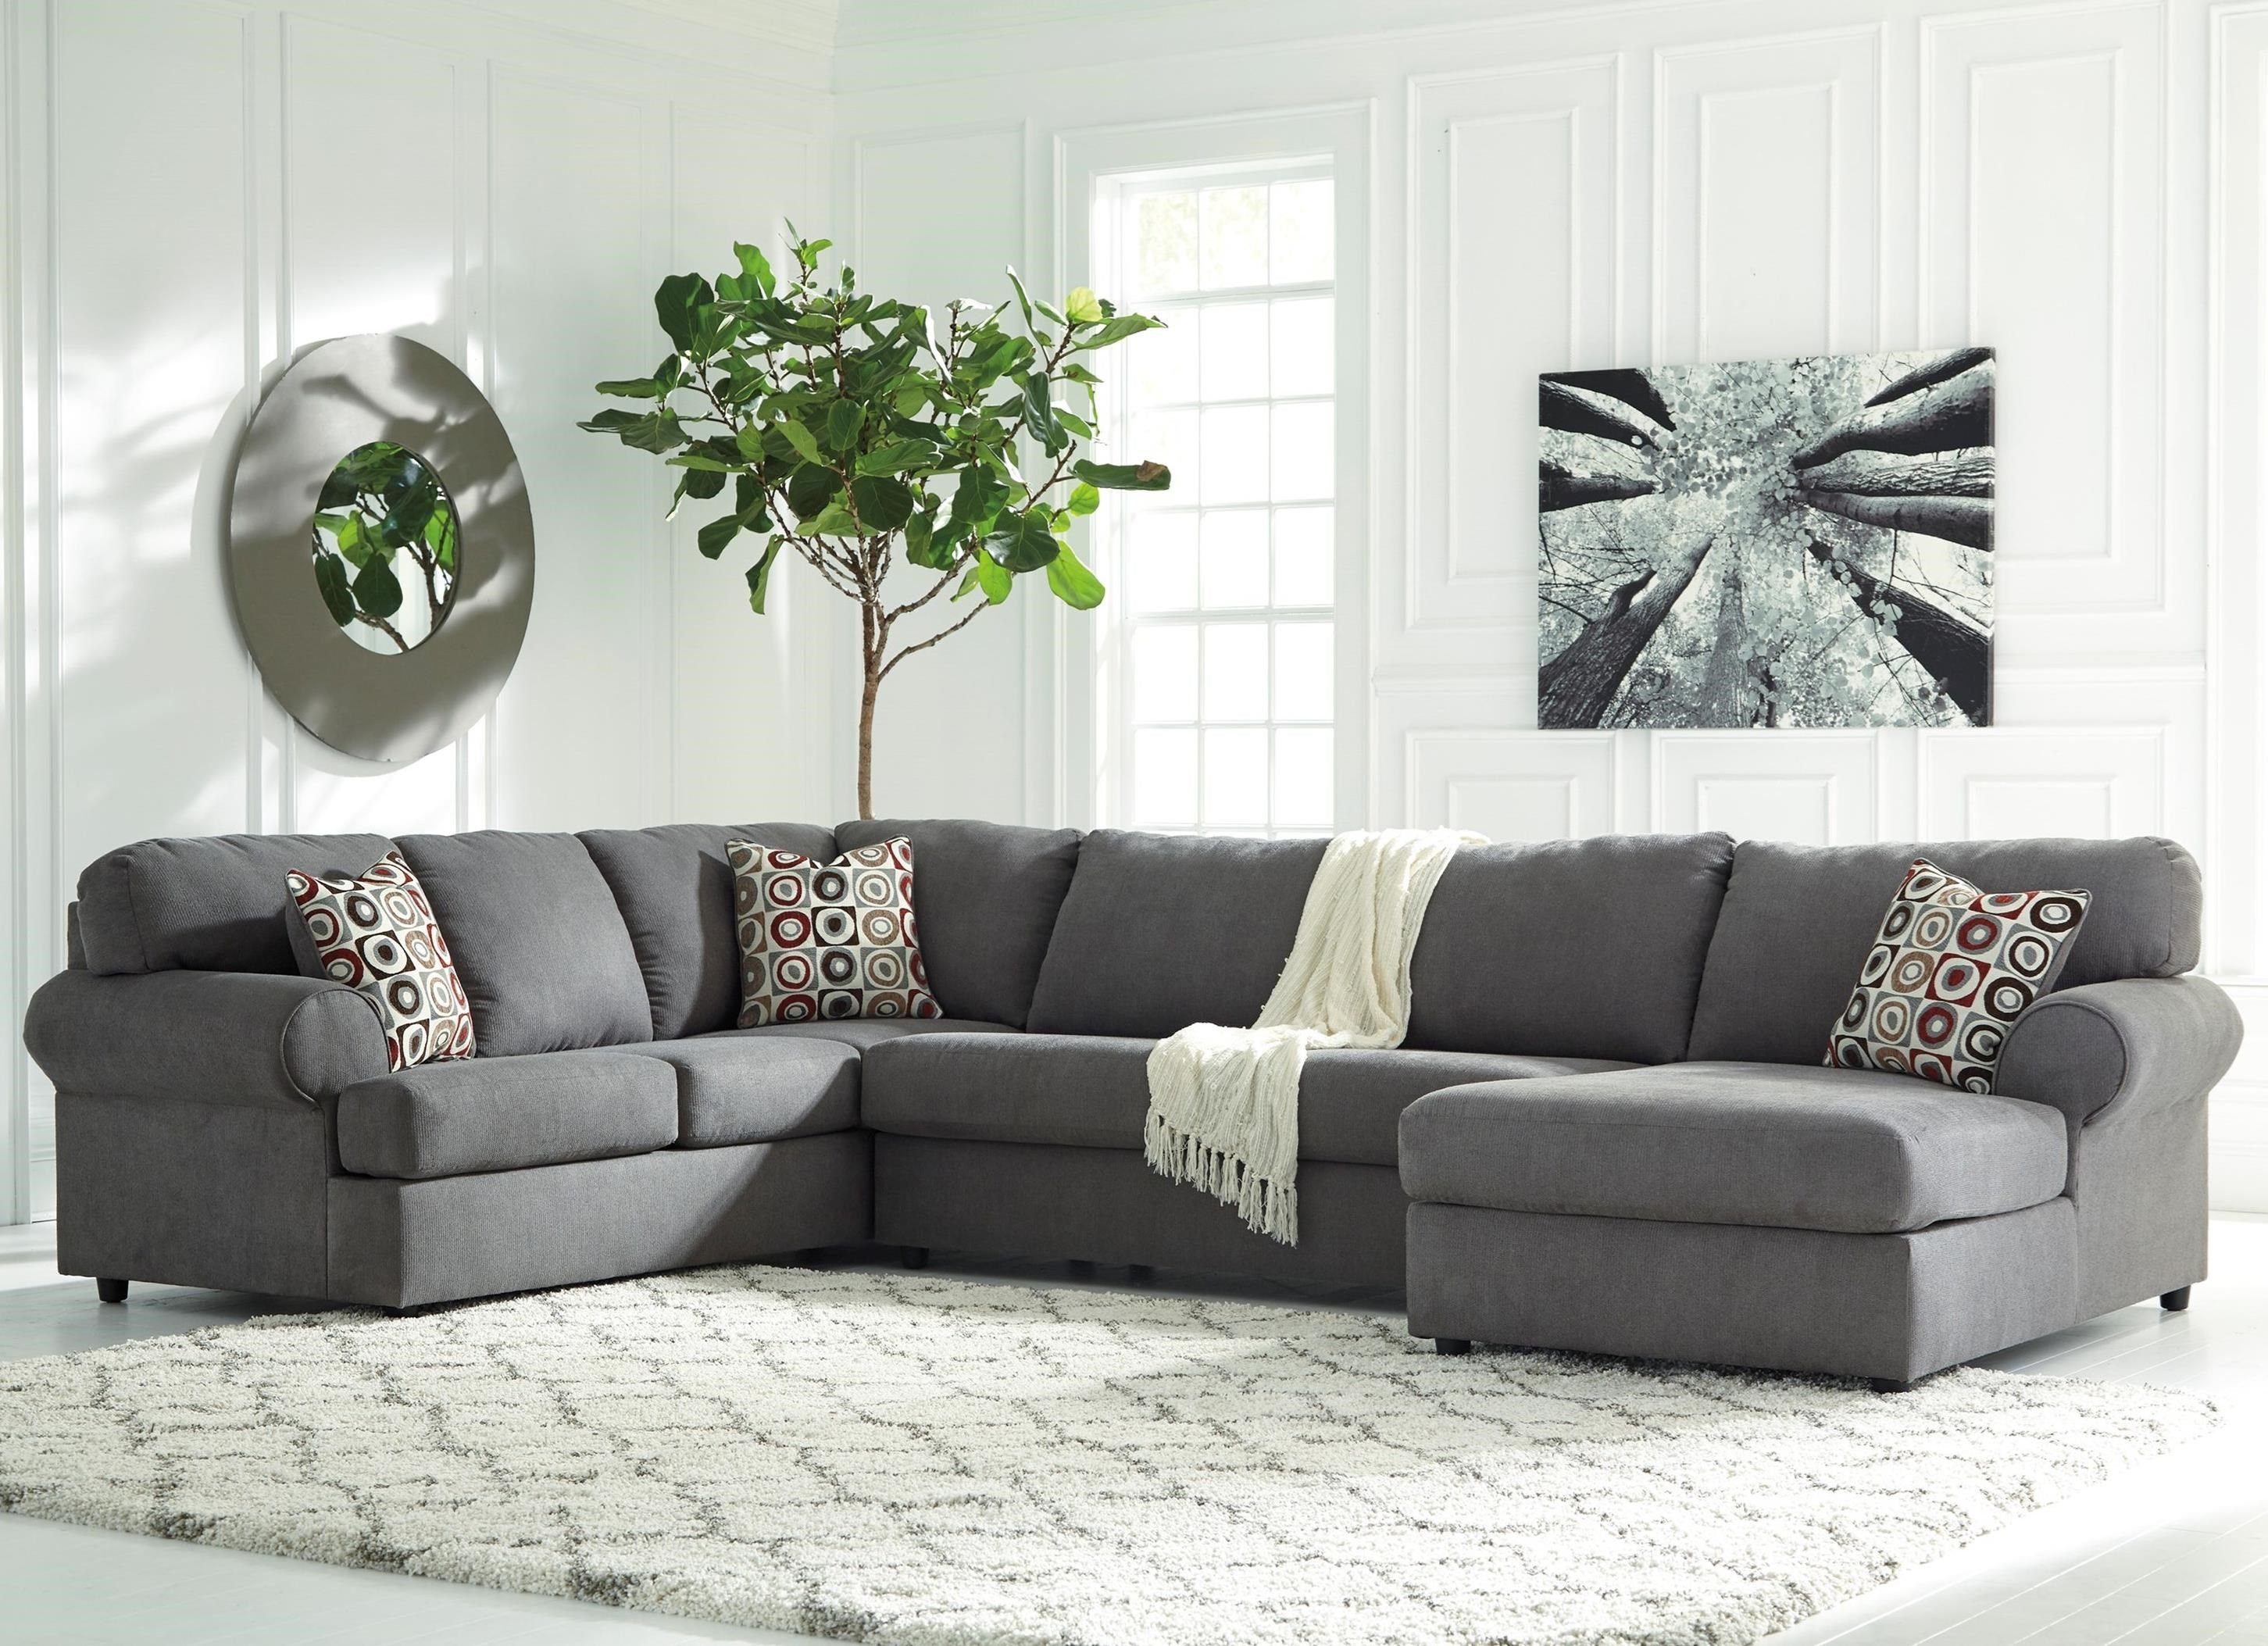 on smith furniture couch kim brothers pinterest back geisler rotmans comfortable traditional sofa seat pillowed riek styled by sectional future pin home at couches with wayside